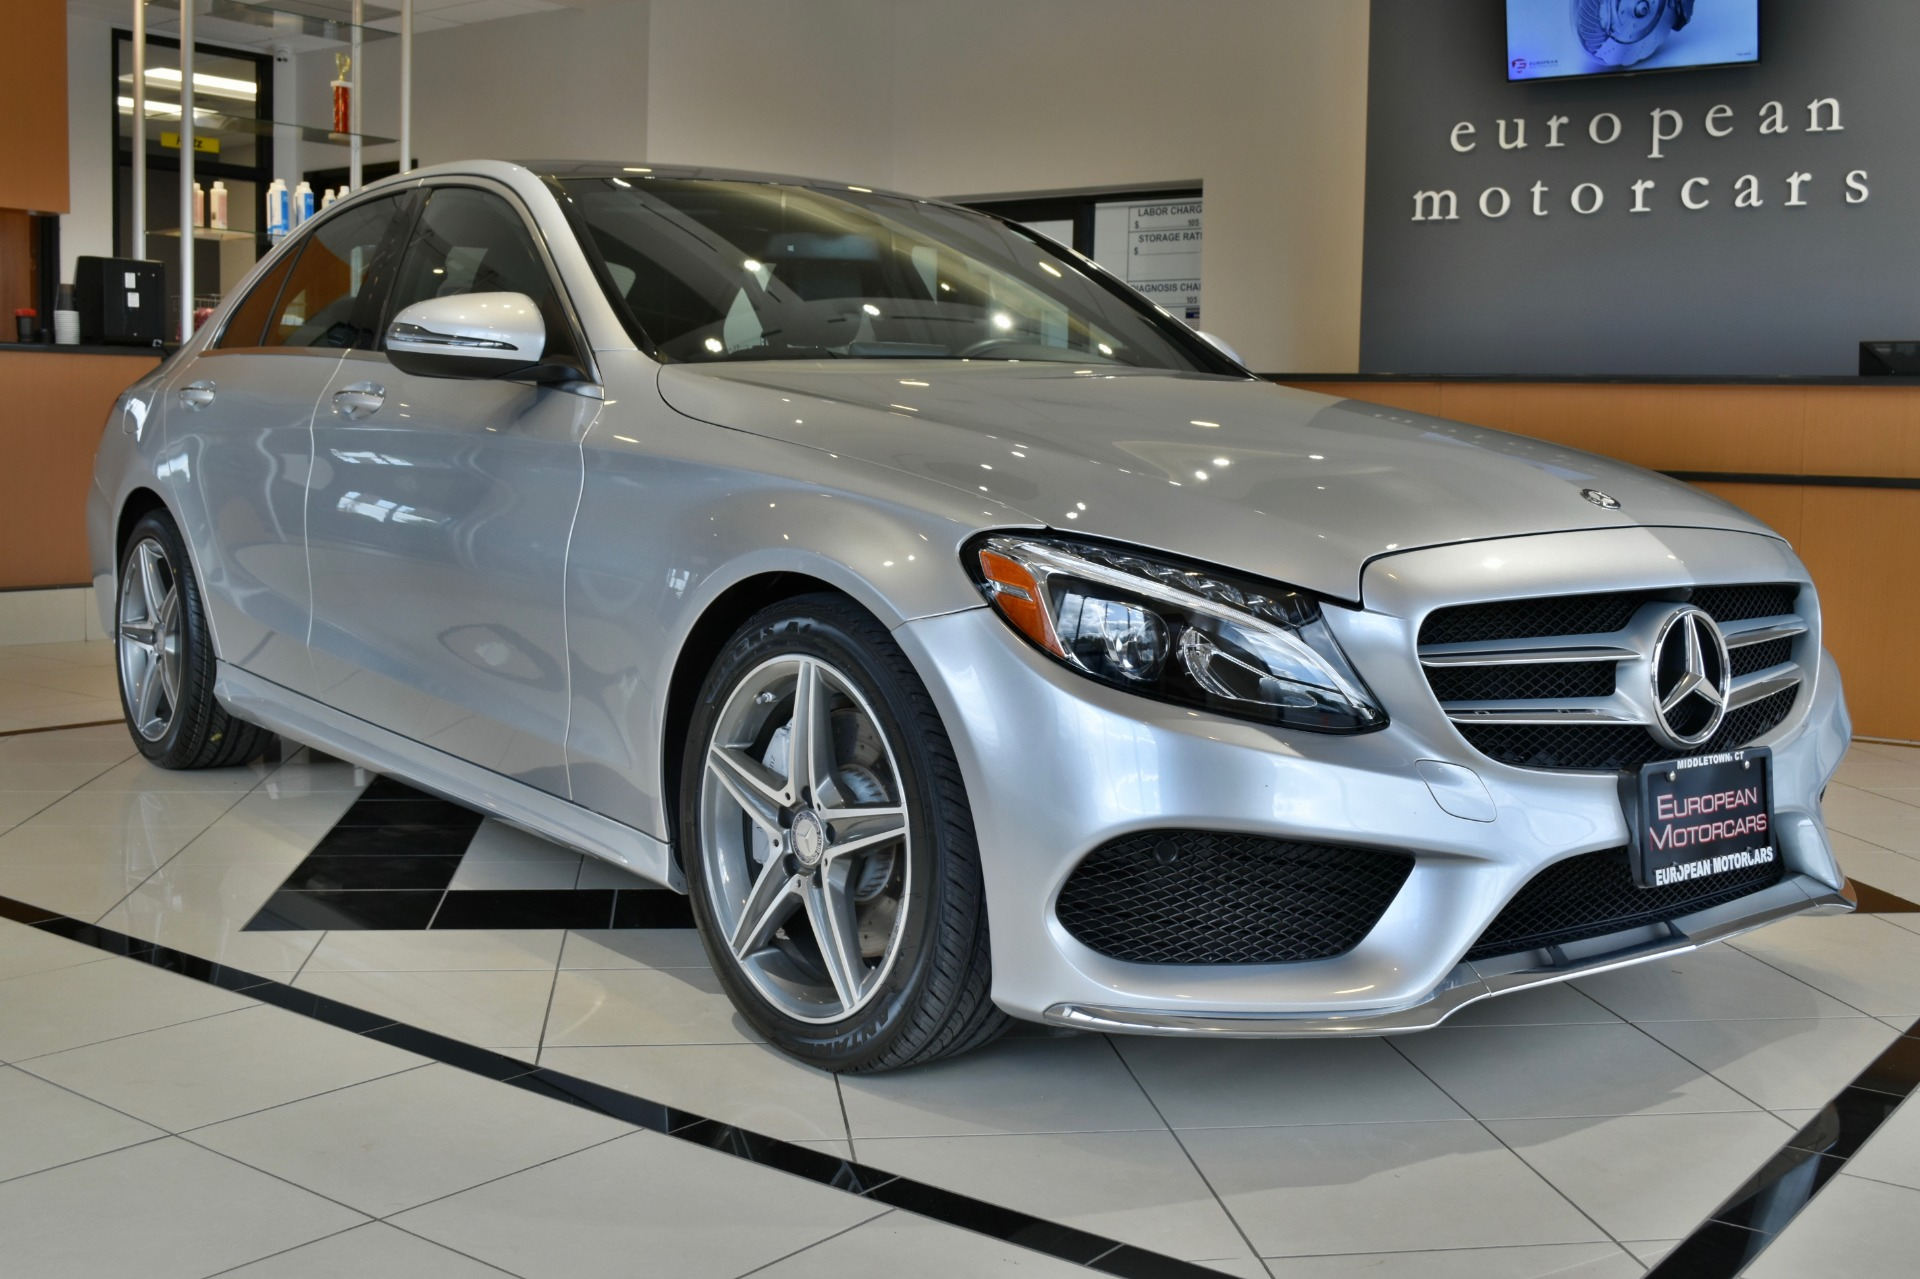 2016 mercedes benz c class c 300 sport 4matic for sale for Euro motorcars mercedes benz